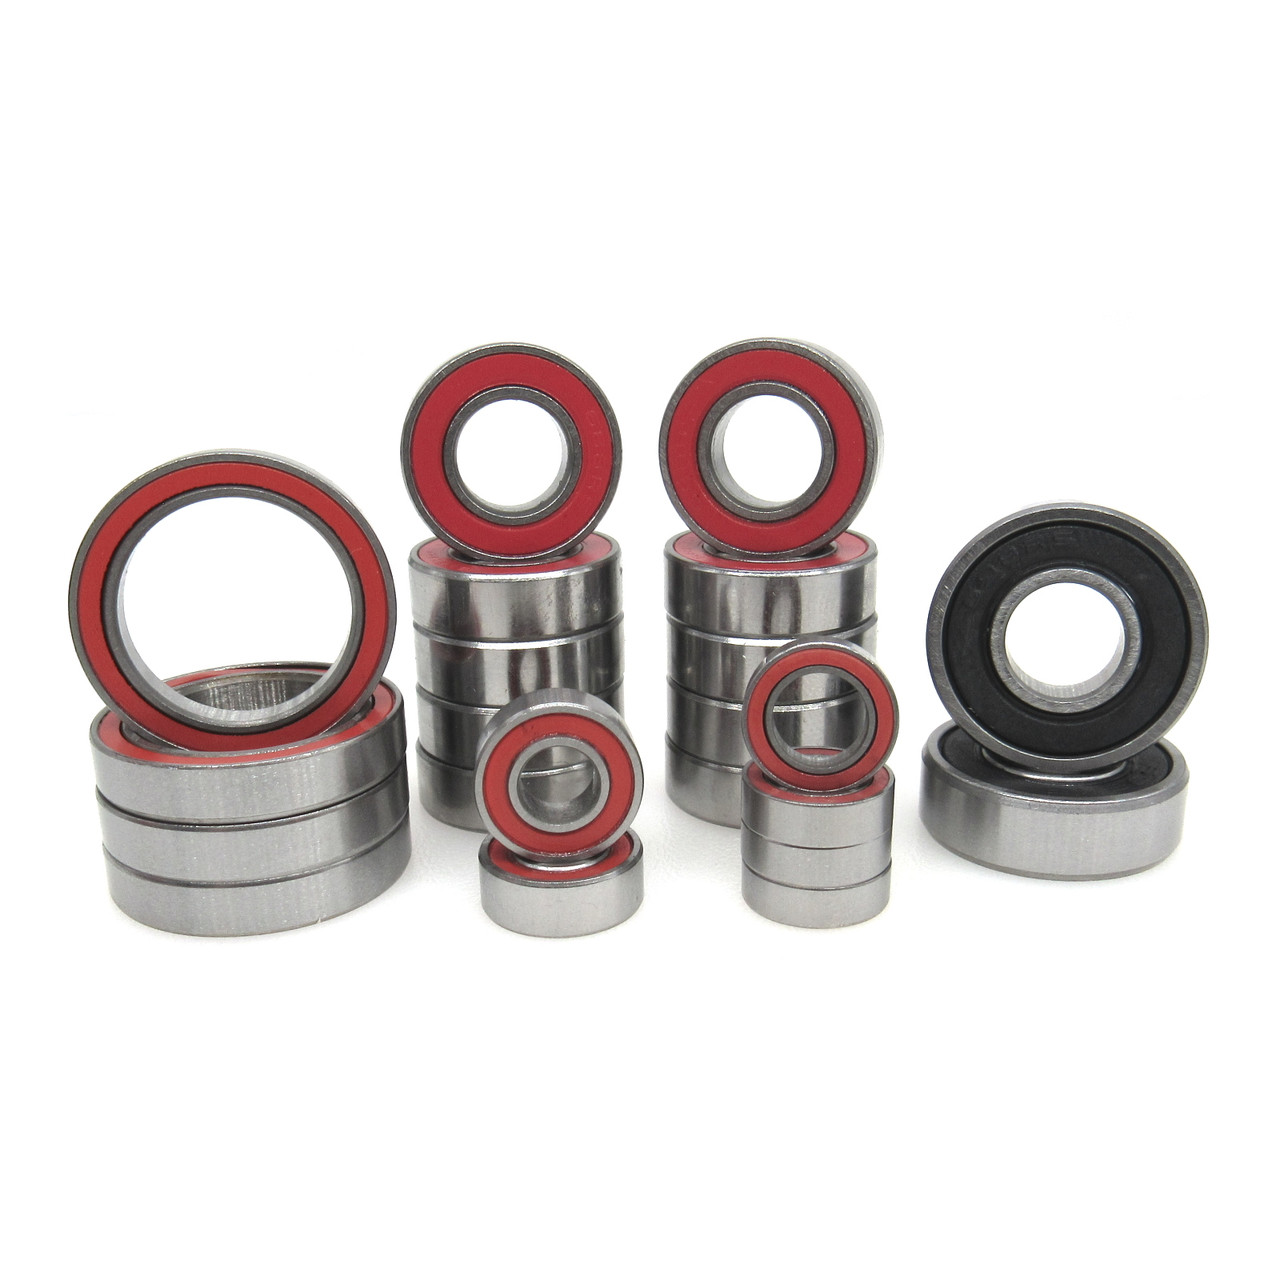 Arrma Kraton Notorious Outcast Typhon 6s BLX Ceramic Bearing Kit (22)